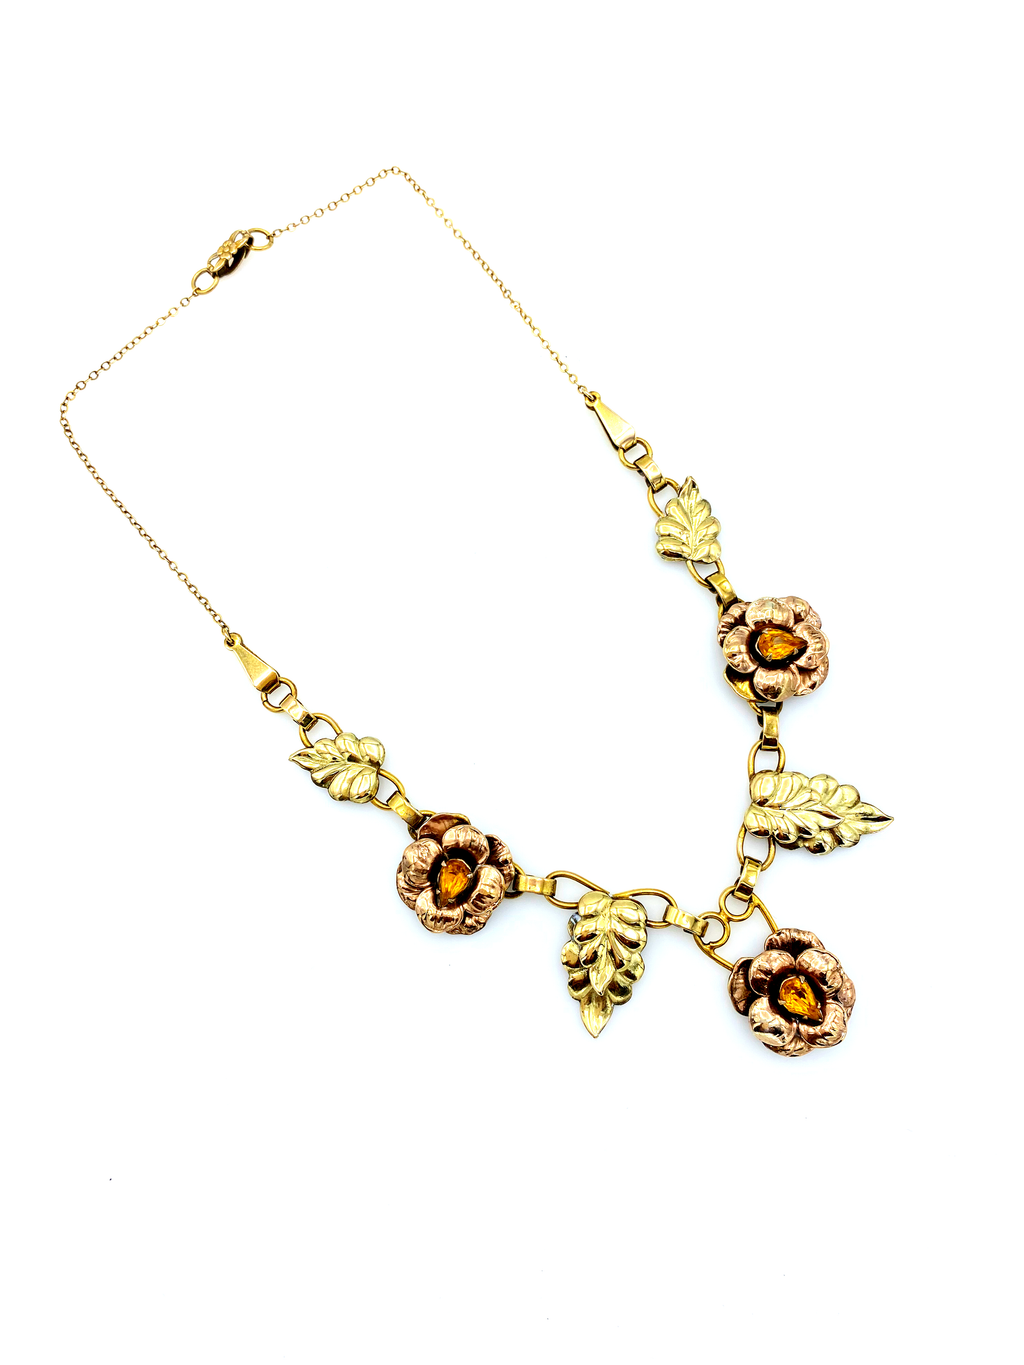 Gold Filled Floral Rhinestone Vintage Pendant-Sustainable Fashion with Vintage Style-Trending Designer Fashion-24 Wishes